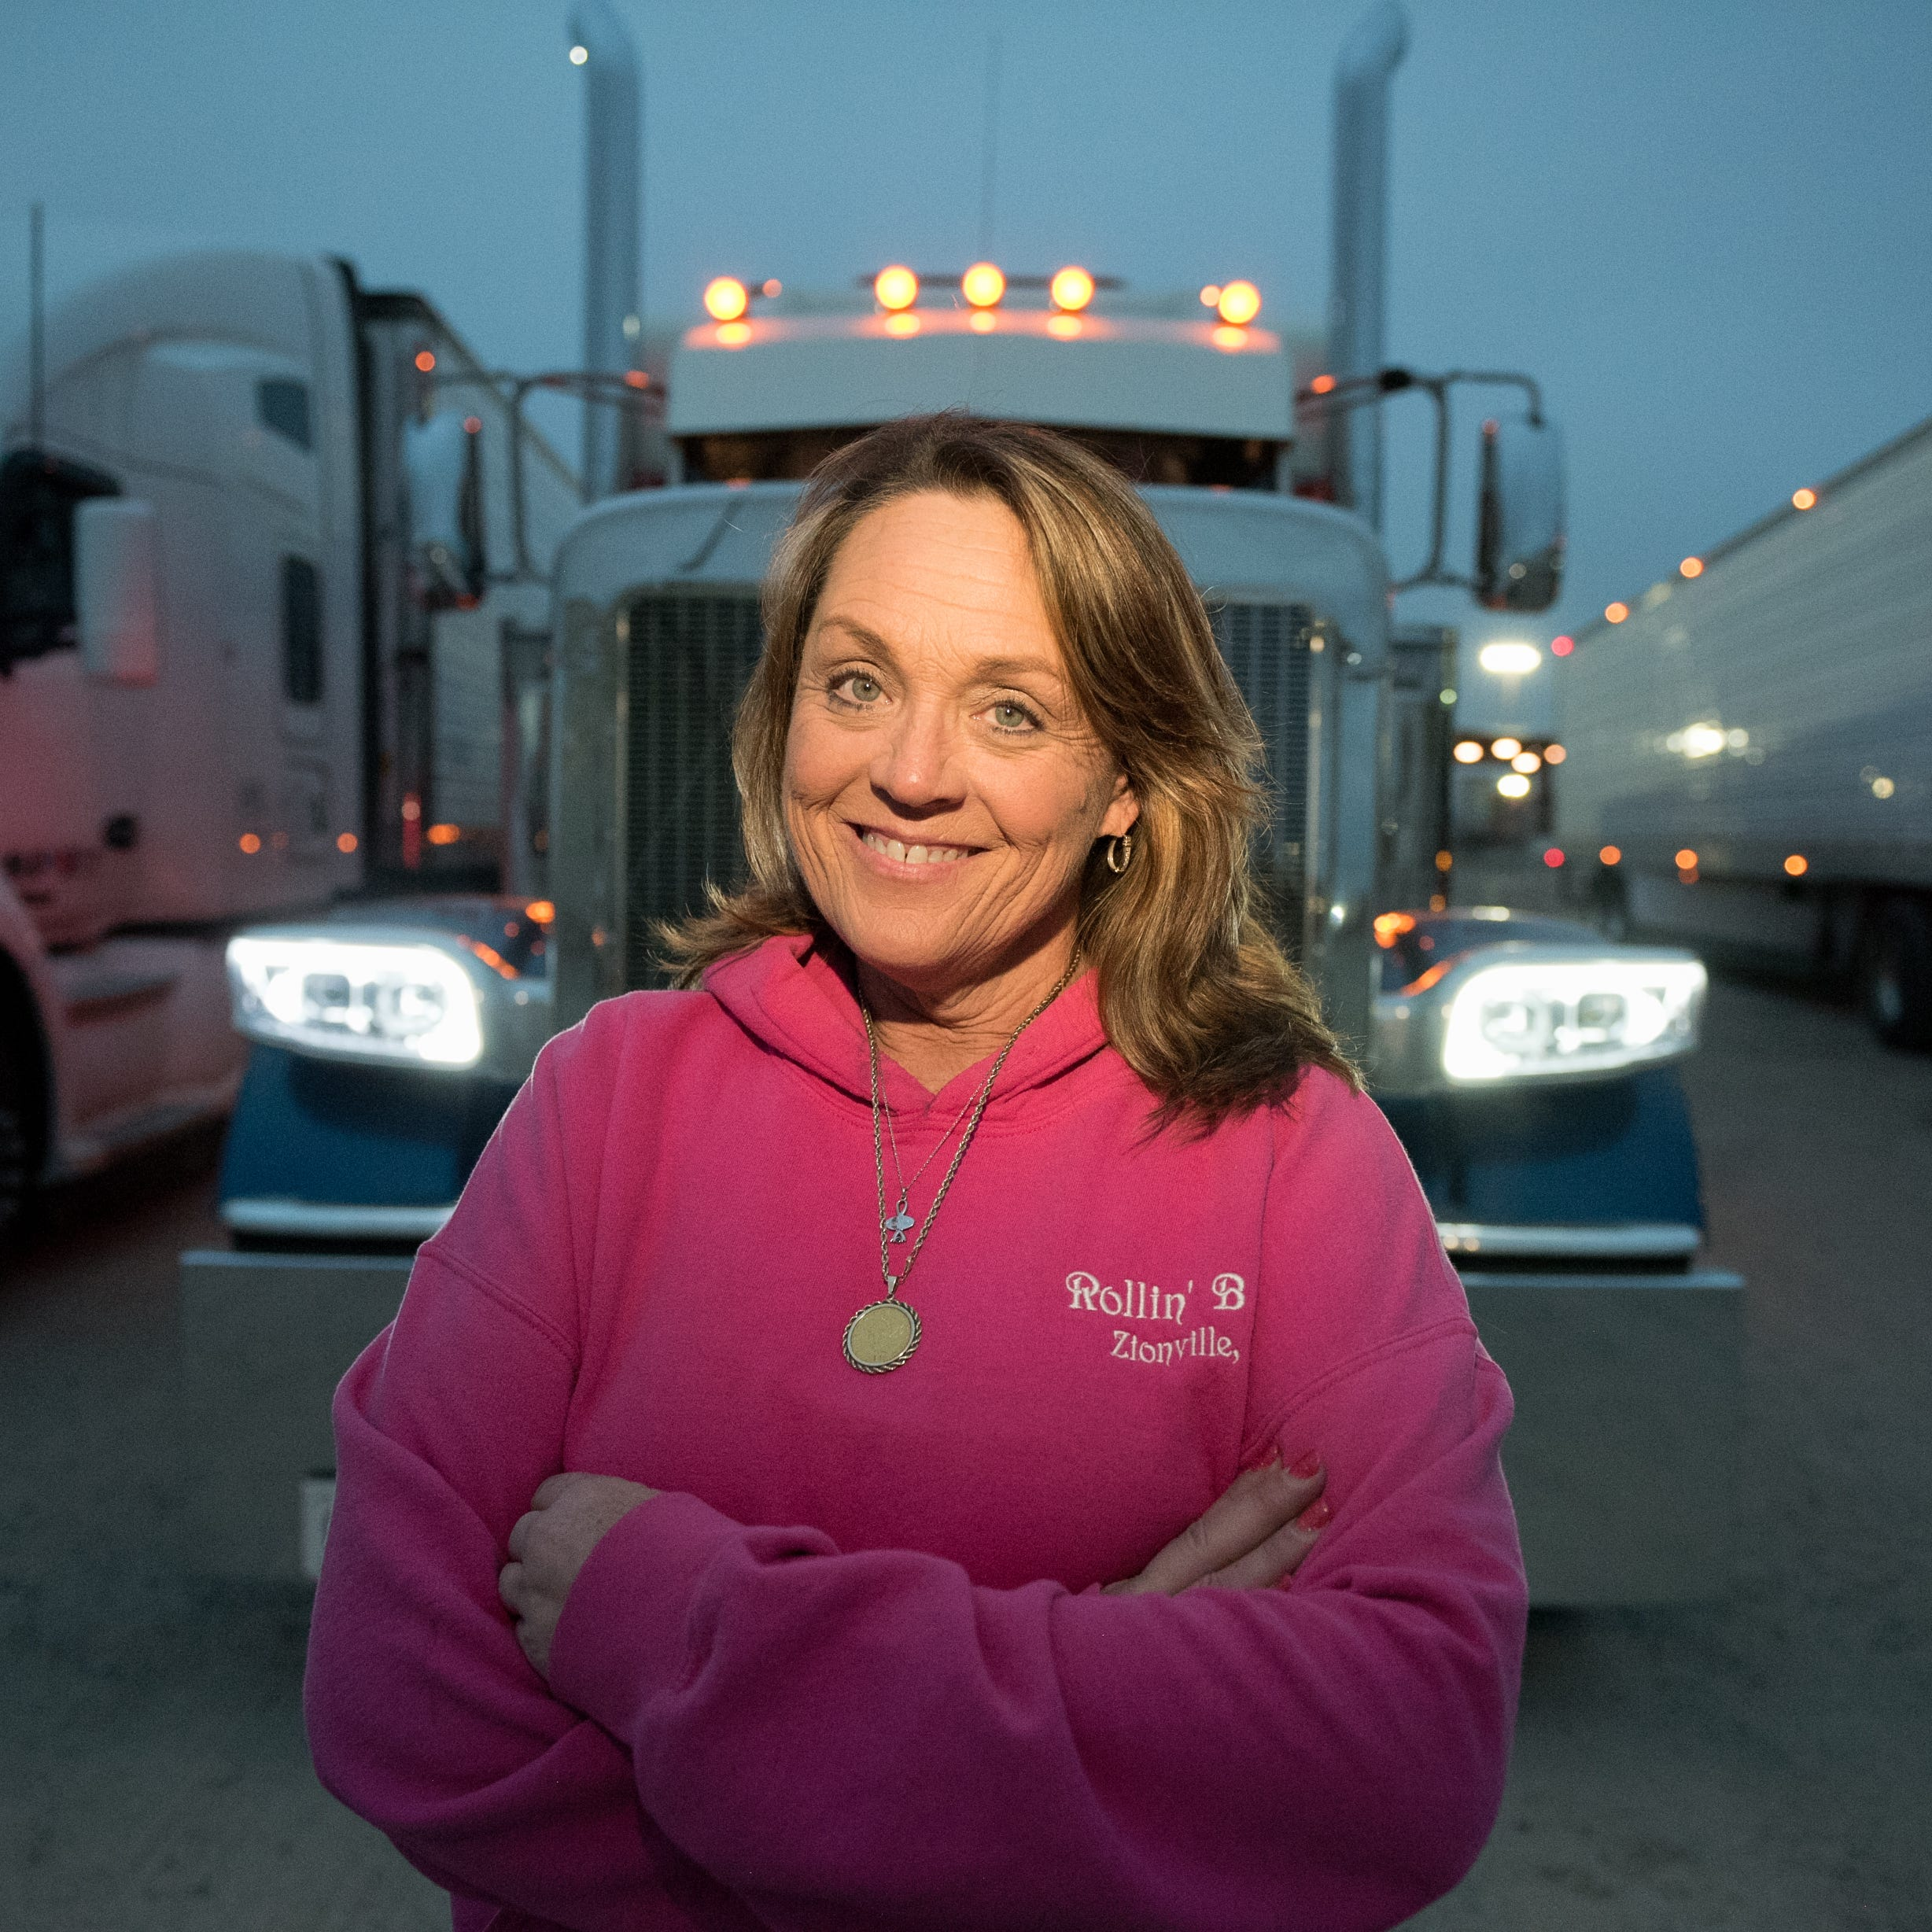 Women are increasingly joining the deadly world of truck driving, confronting sexism and long hours